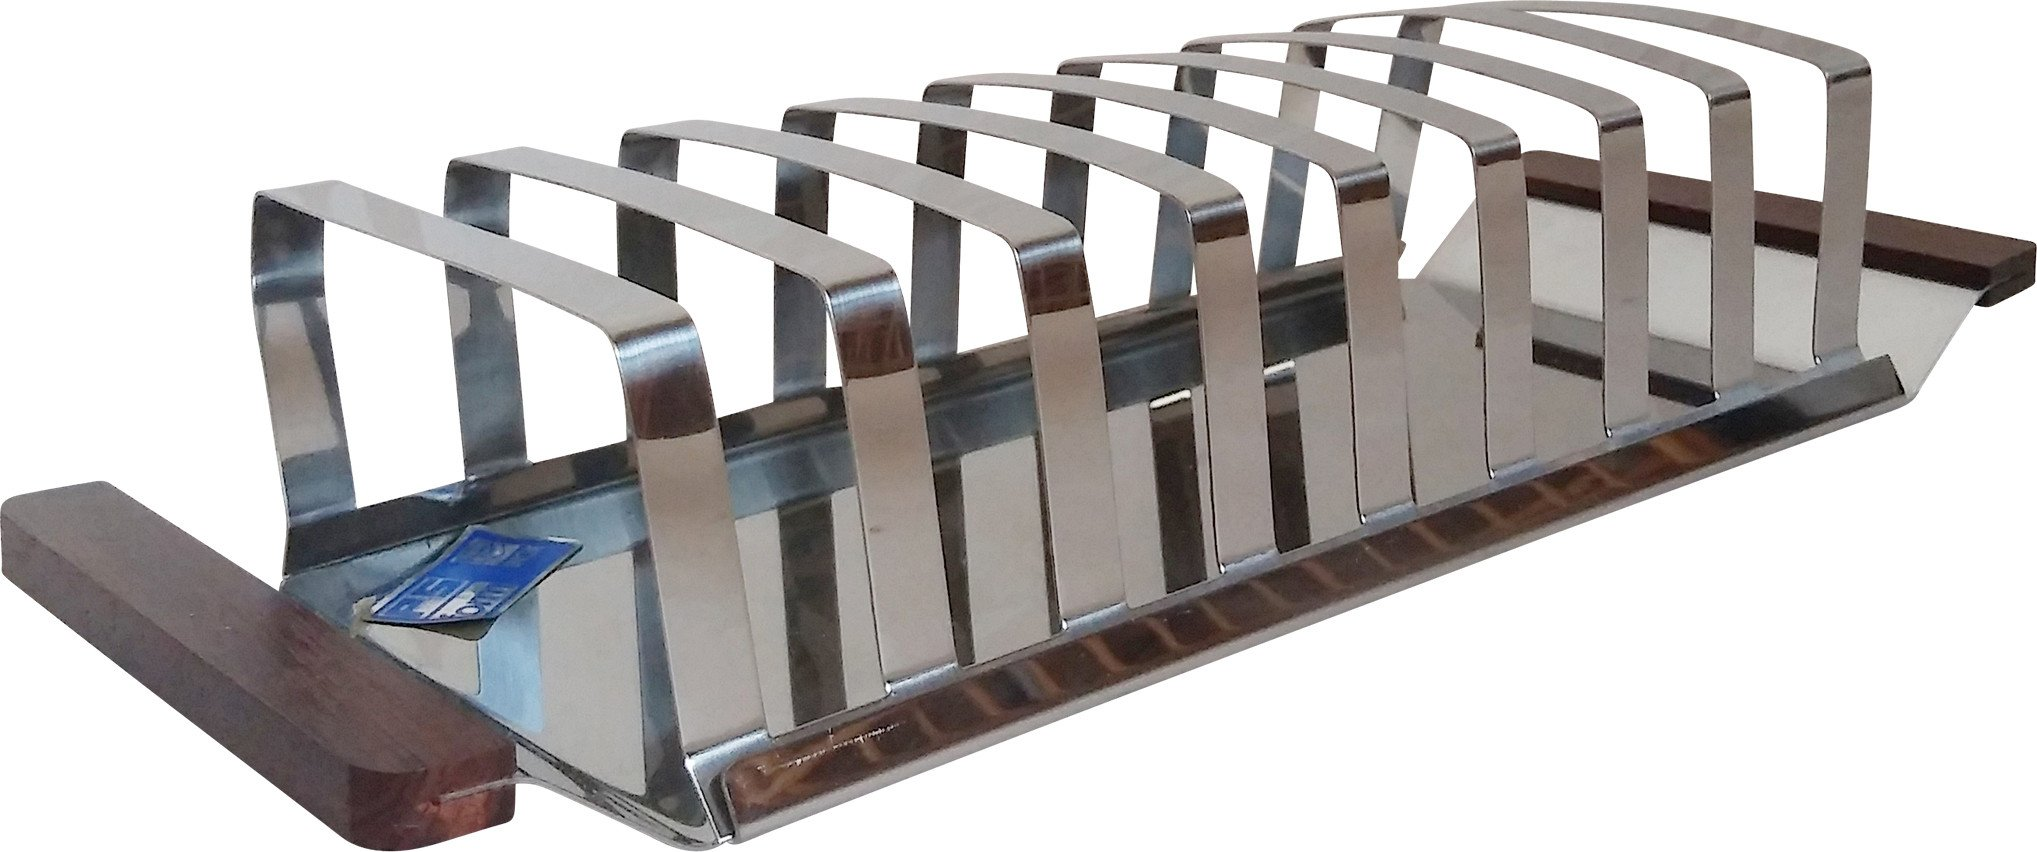 Toast Rack, Germany, 1970s